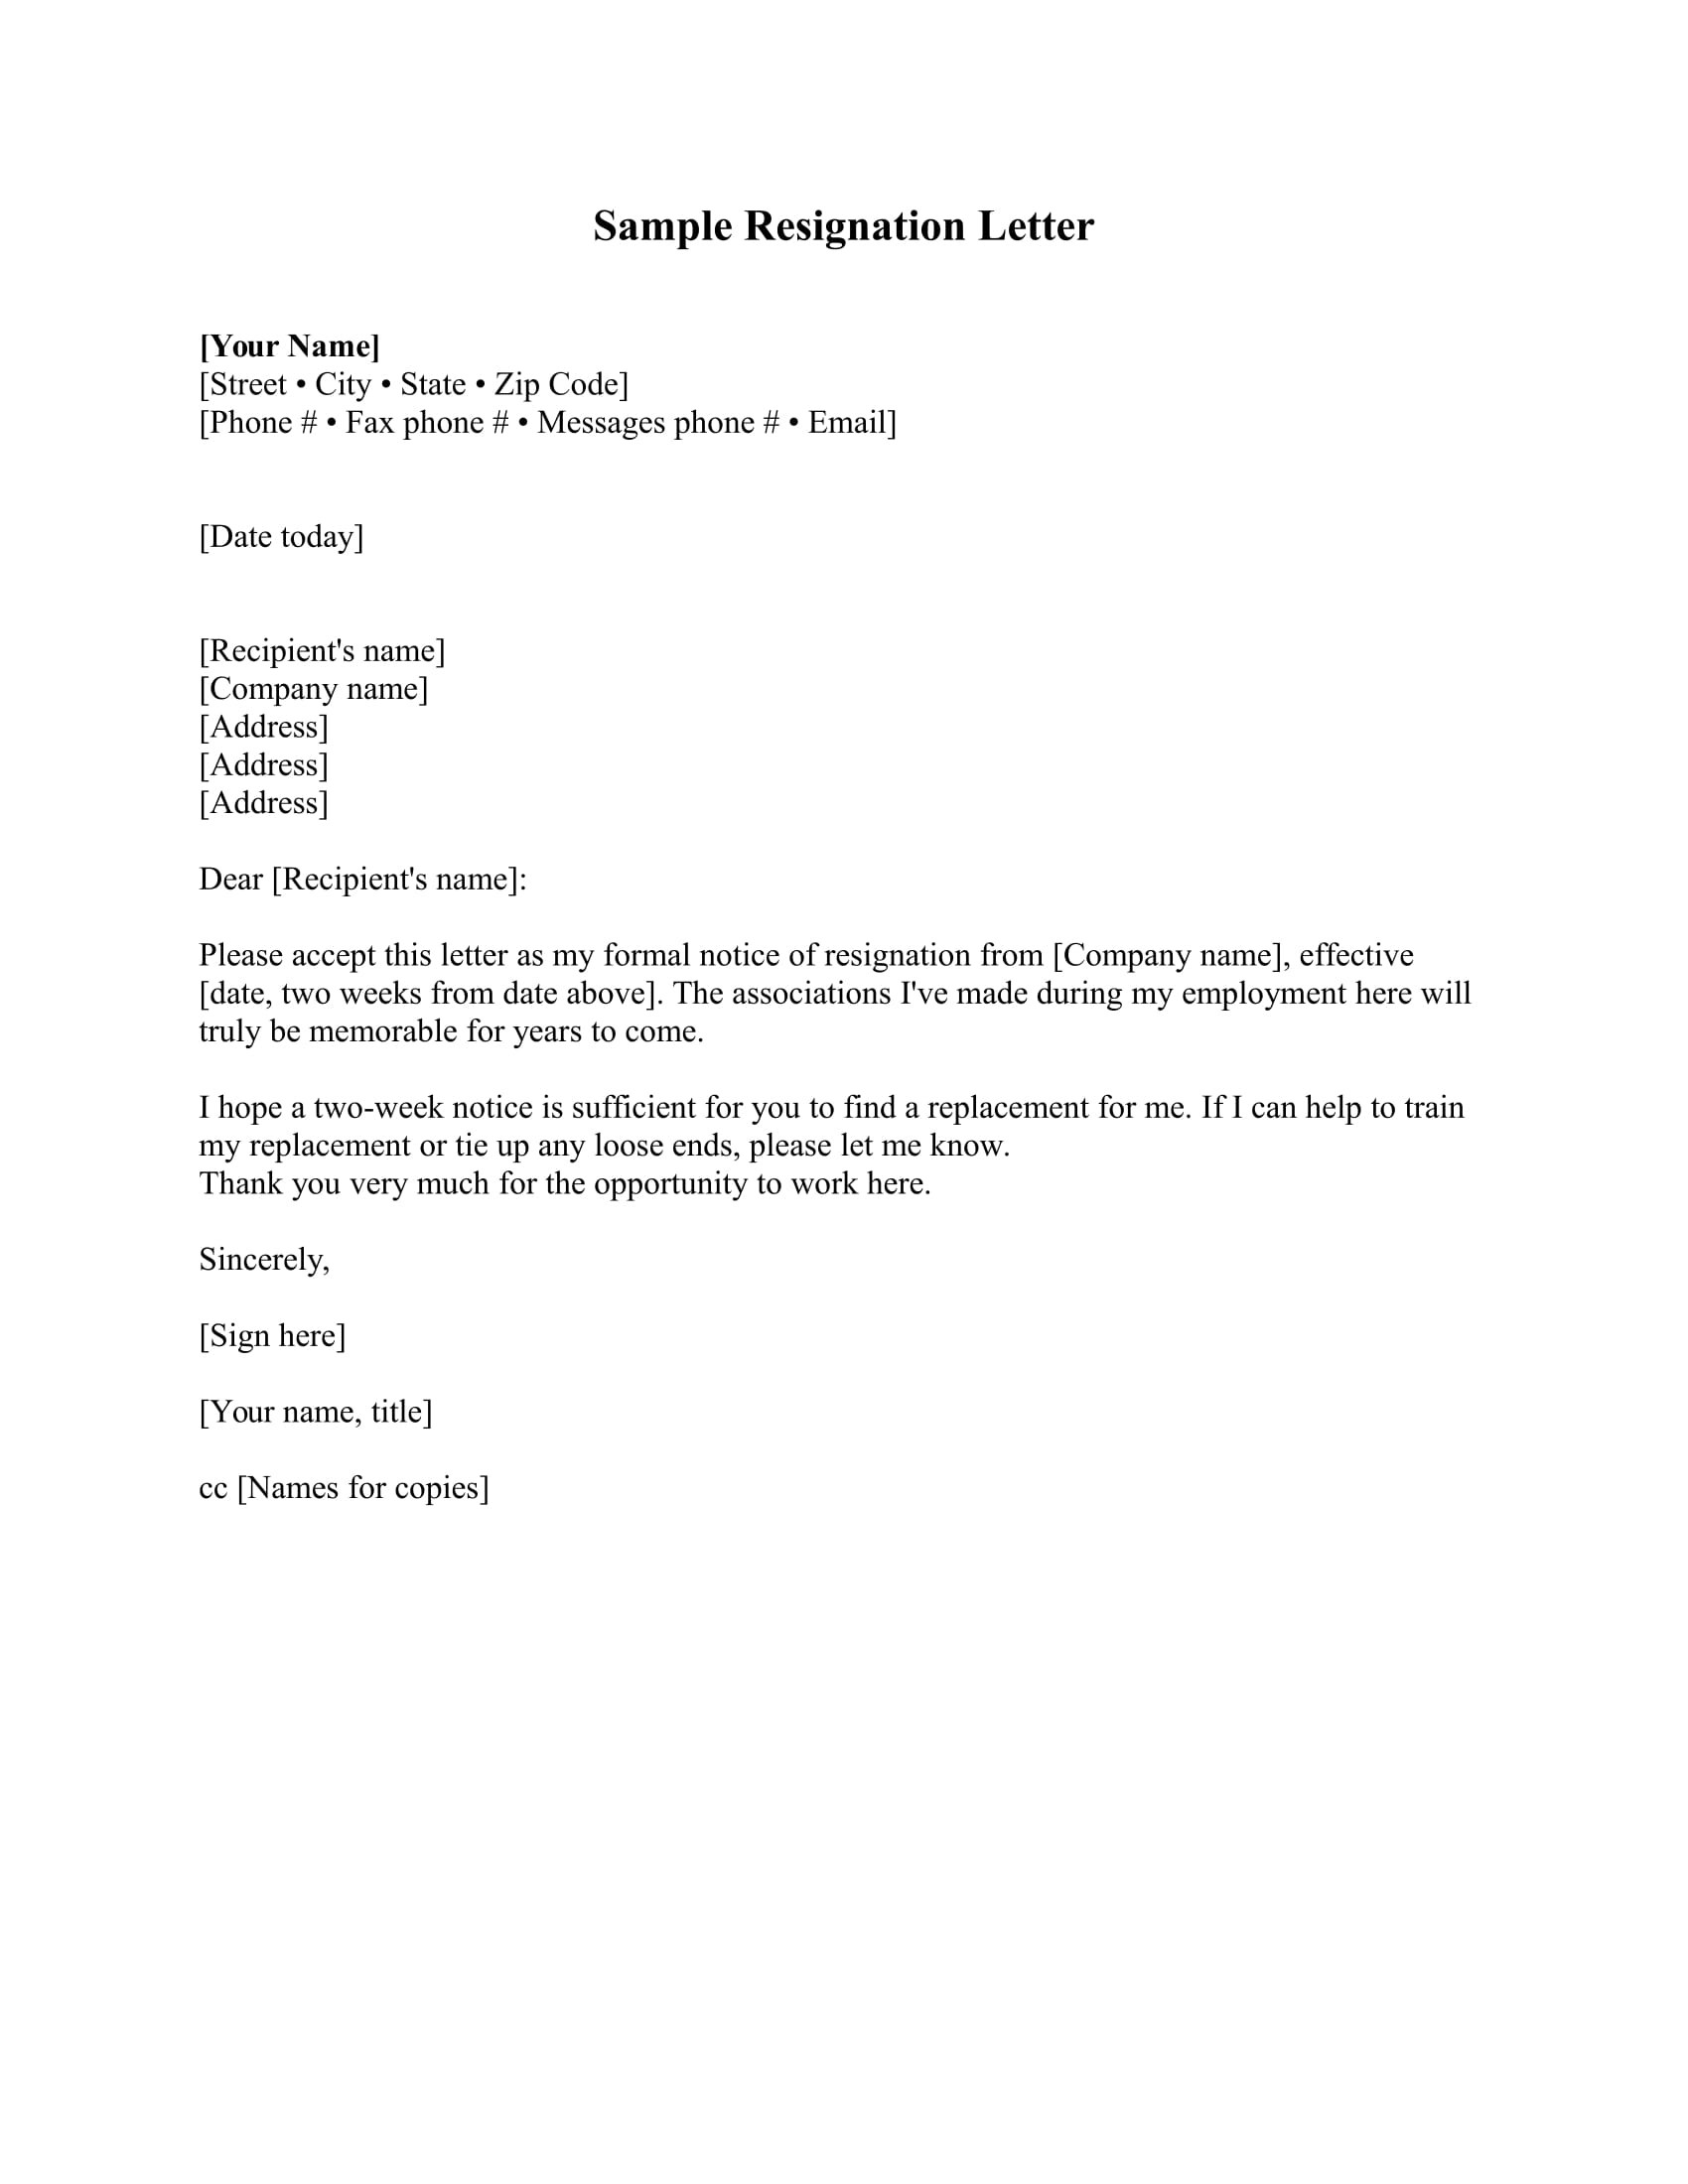 quitting job letter template  17+ Free Resignation Letter - PDF, DOC | Examples - quitting job letter template